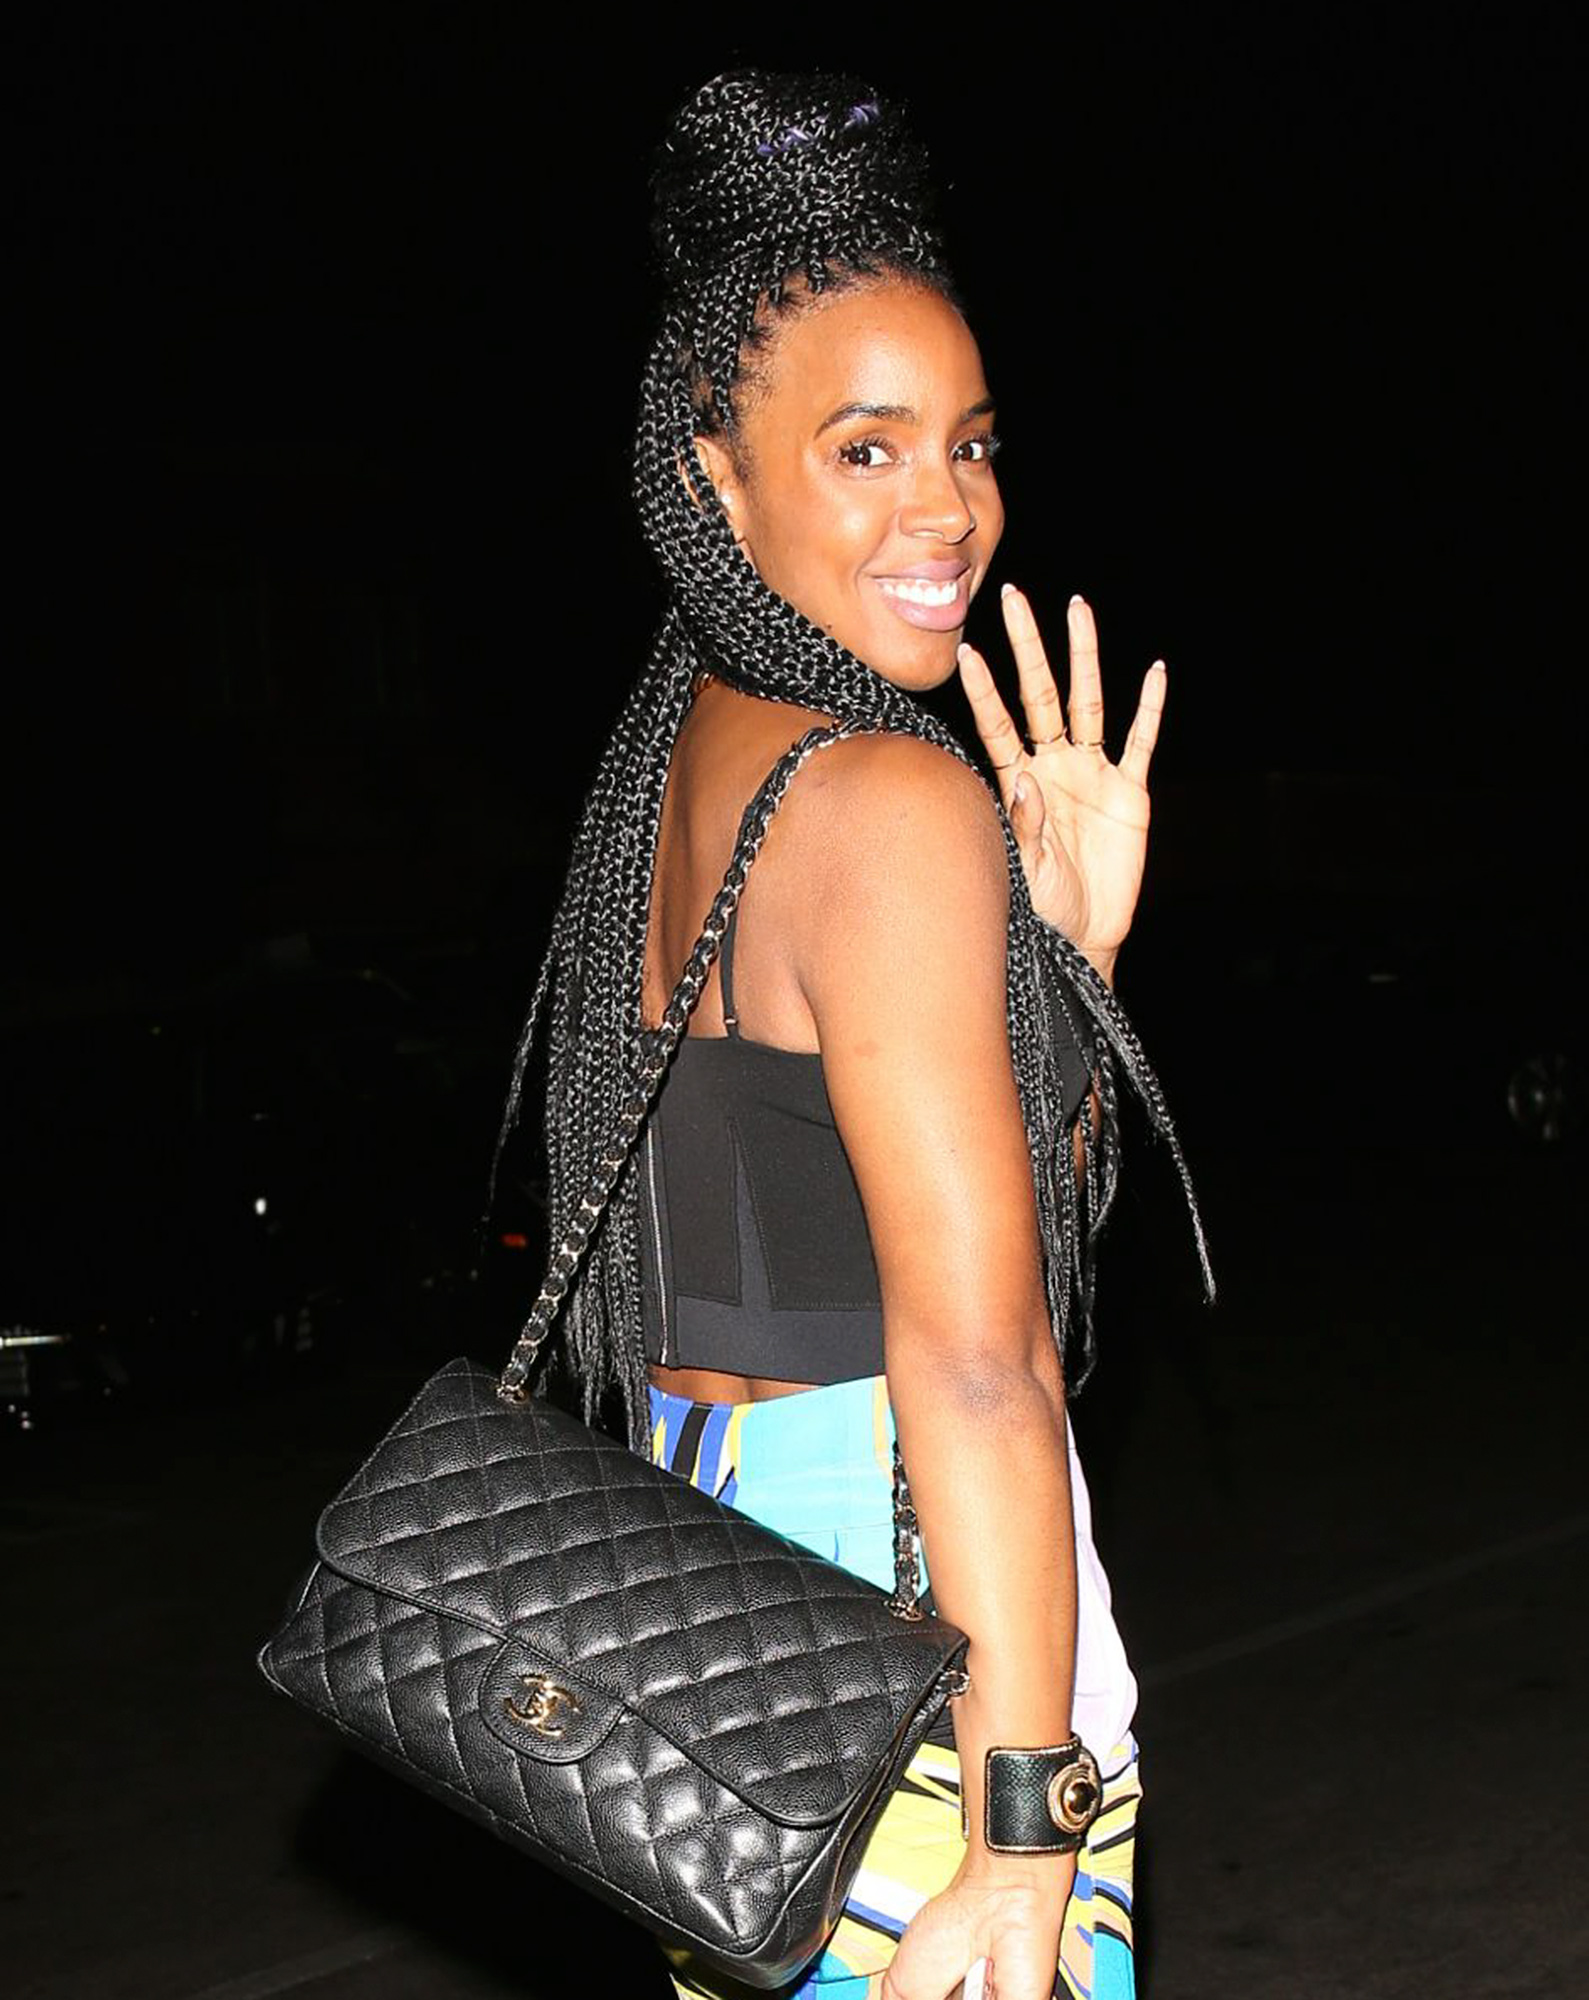 EXCLUSIVE: Kelly Rowland arrives to sushi dinner in Beverly Hills